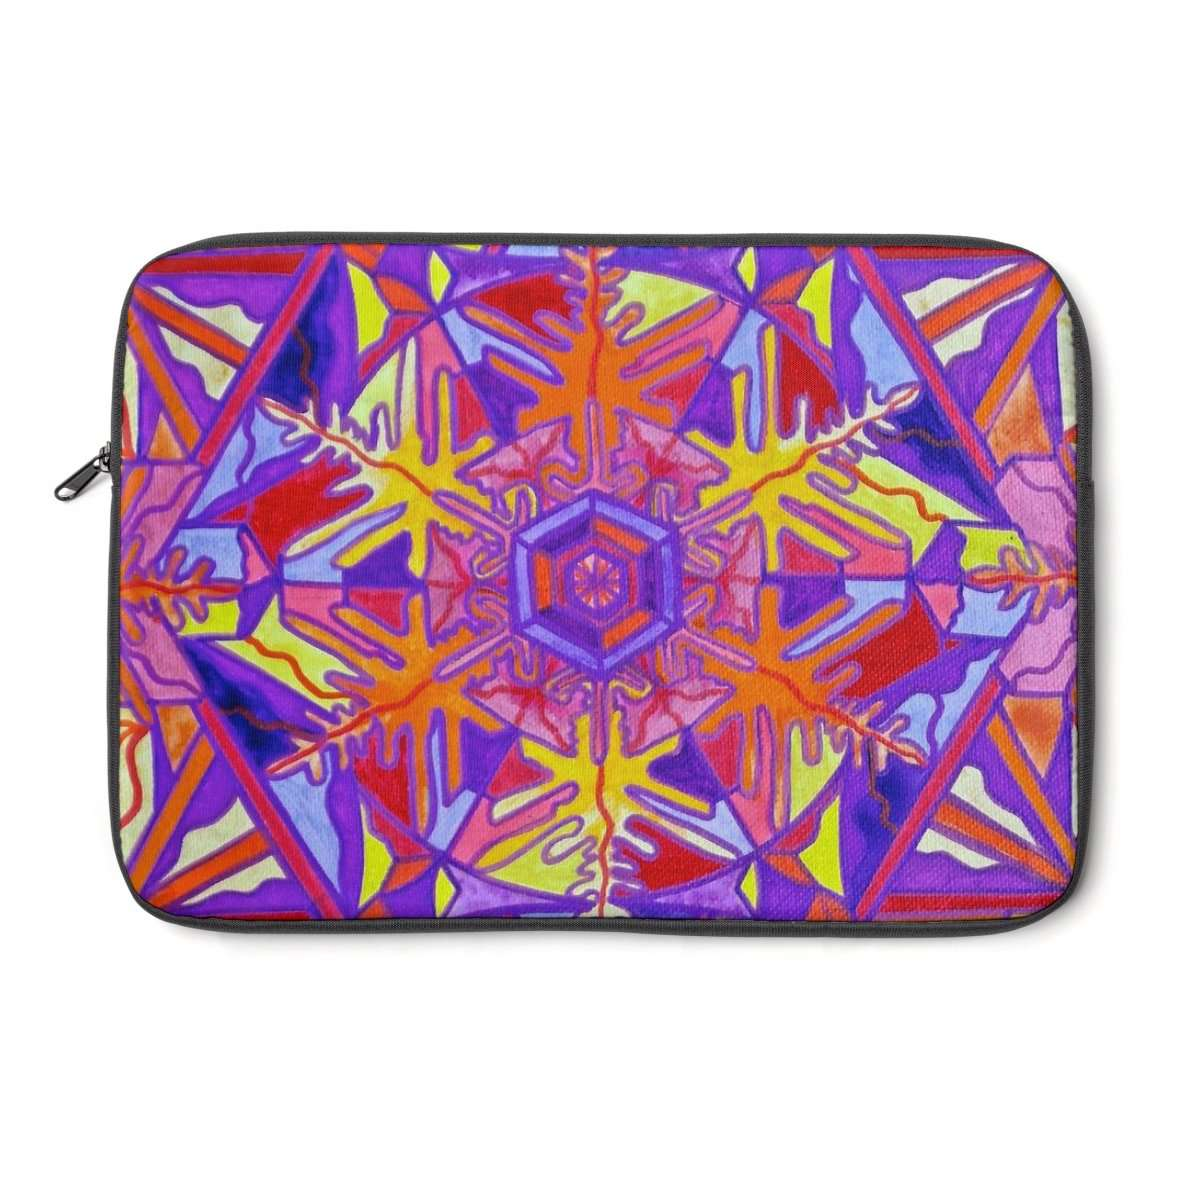 Exhilaration - Laptop Sleeve